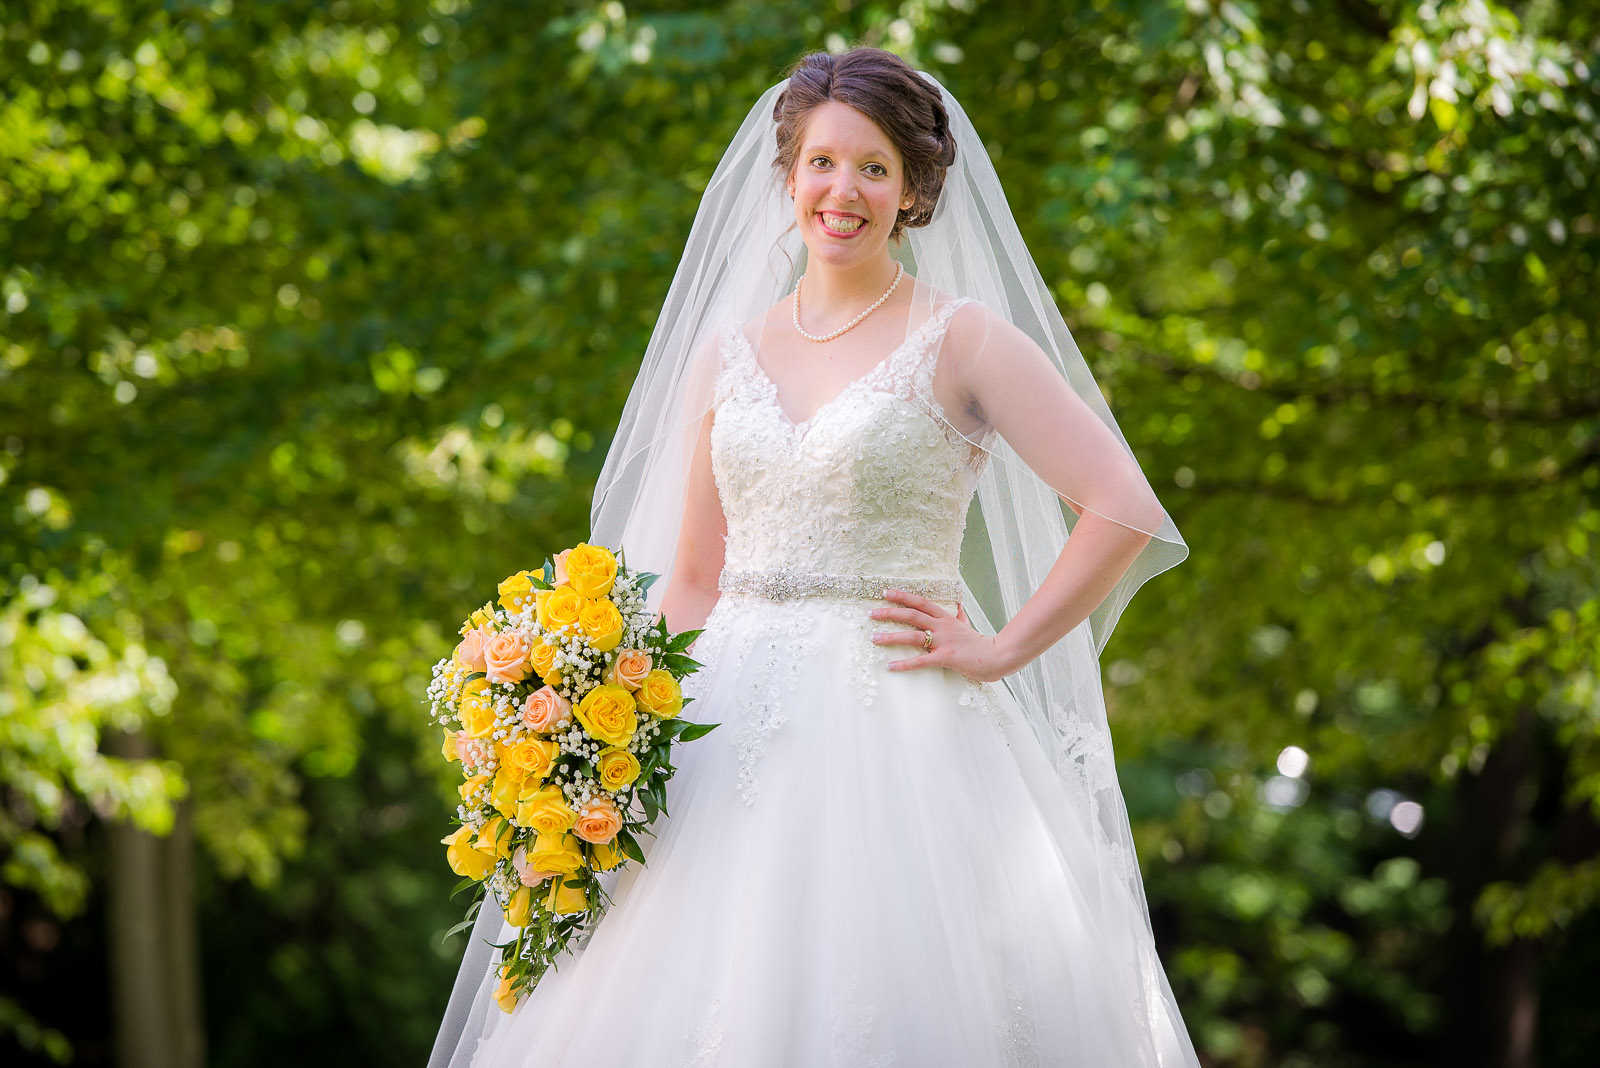 Eric_and_Christy_Photography_Blog_Wedding_Kelly_Michael-30